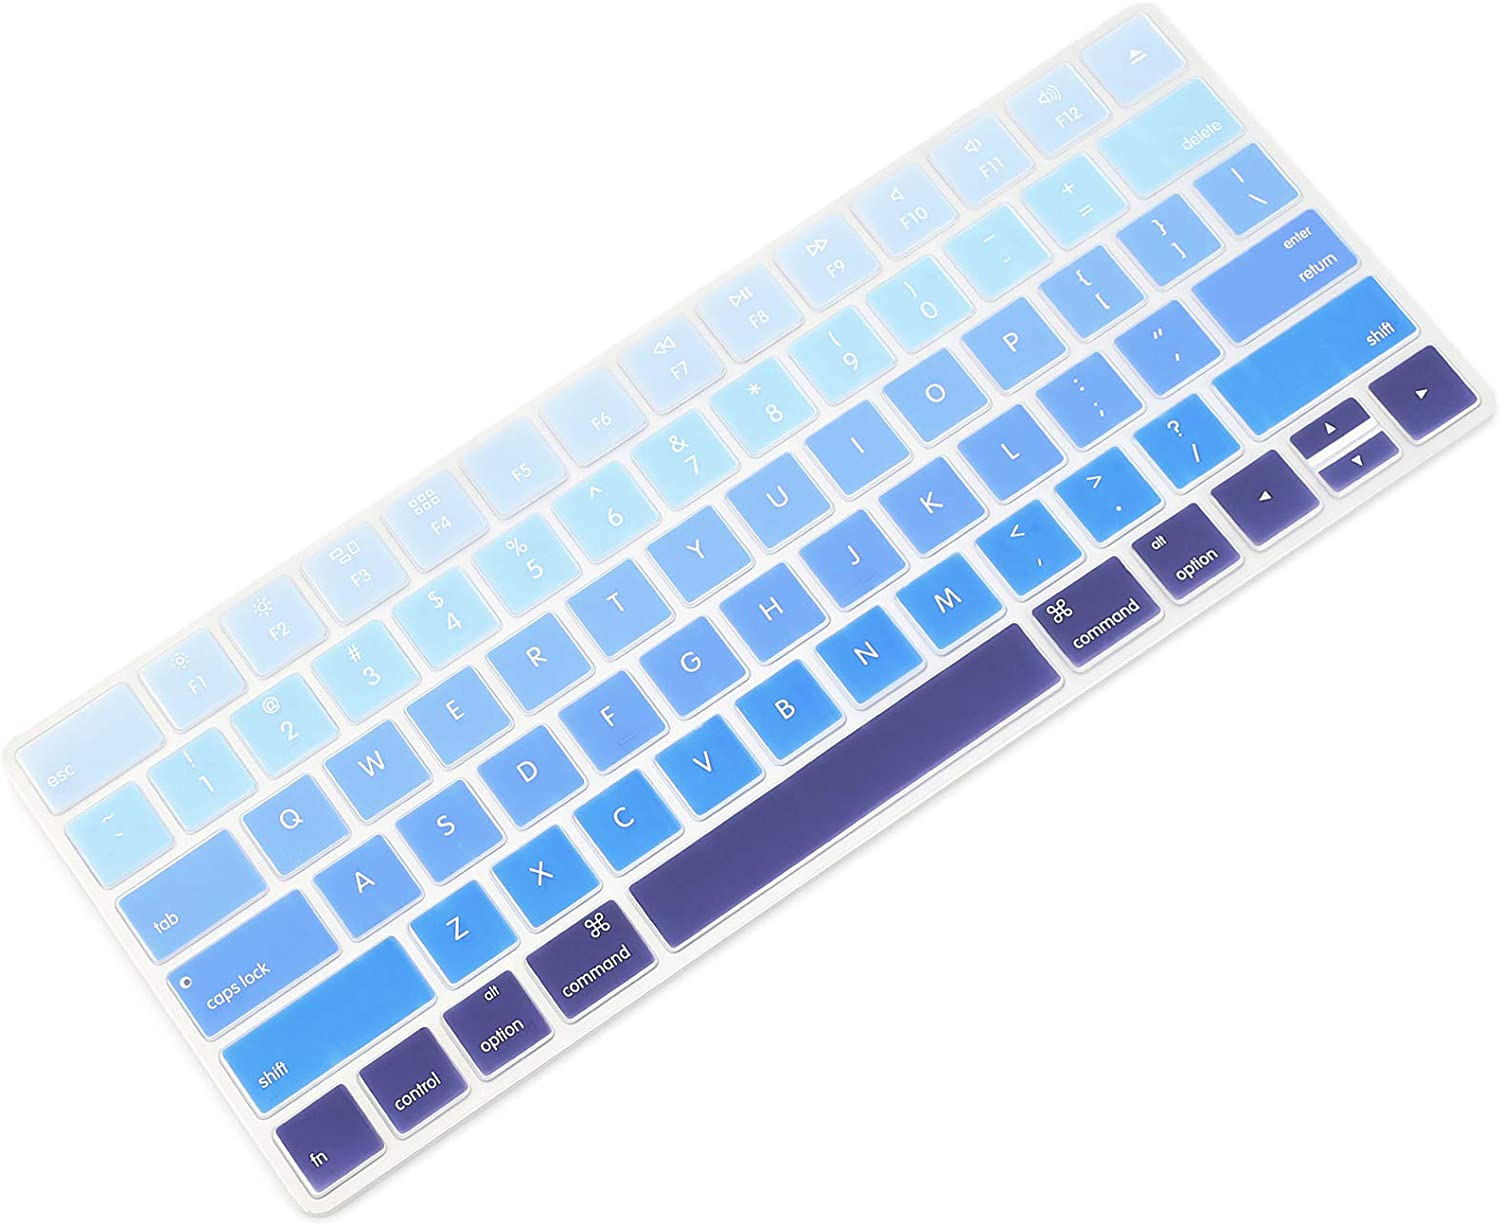 Allinside Ombre Blue Cover for Apple Magic Keyboard (MLA22LL/A) with US Layout